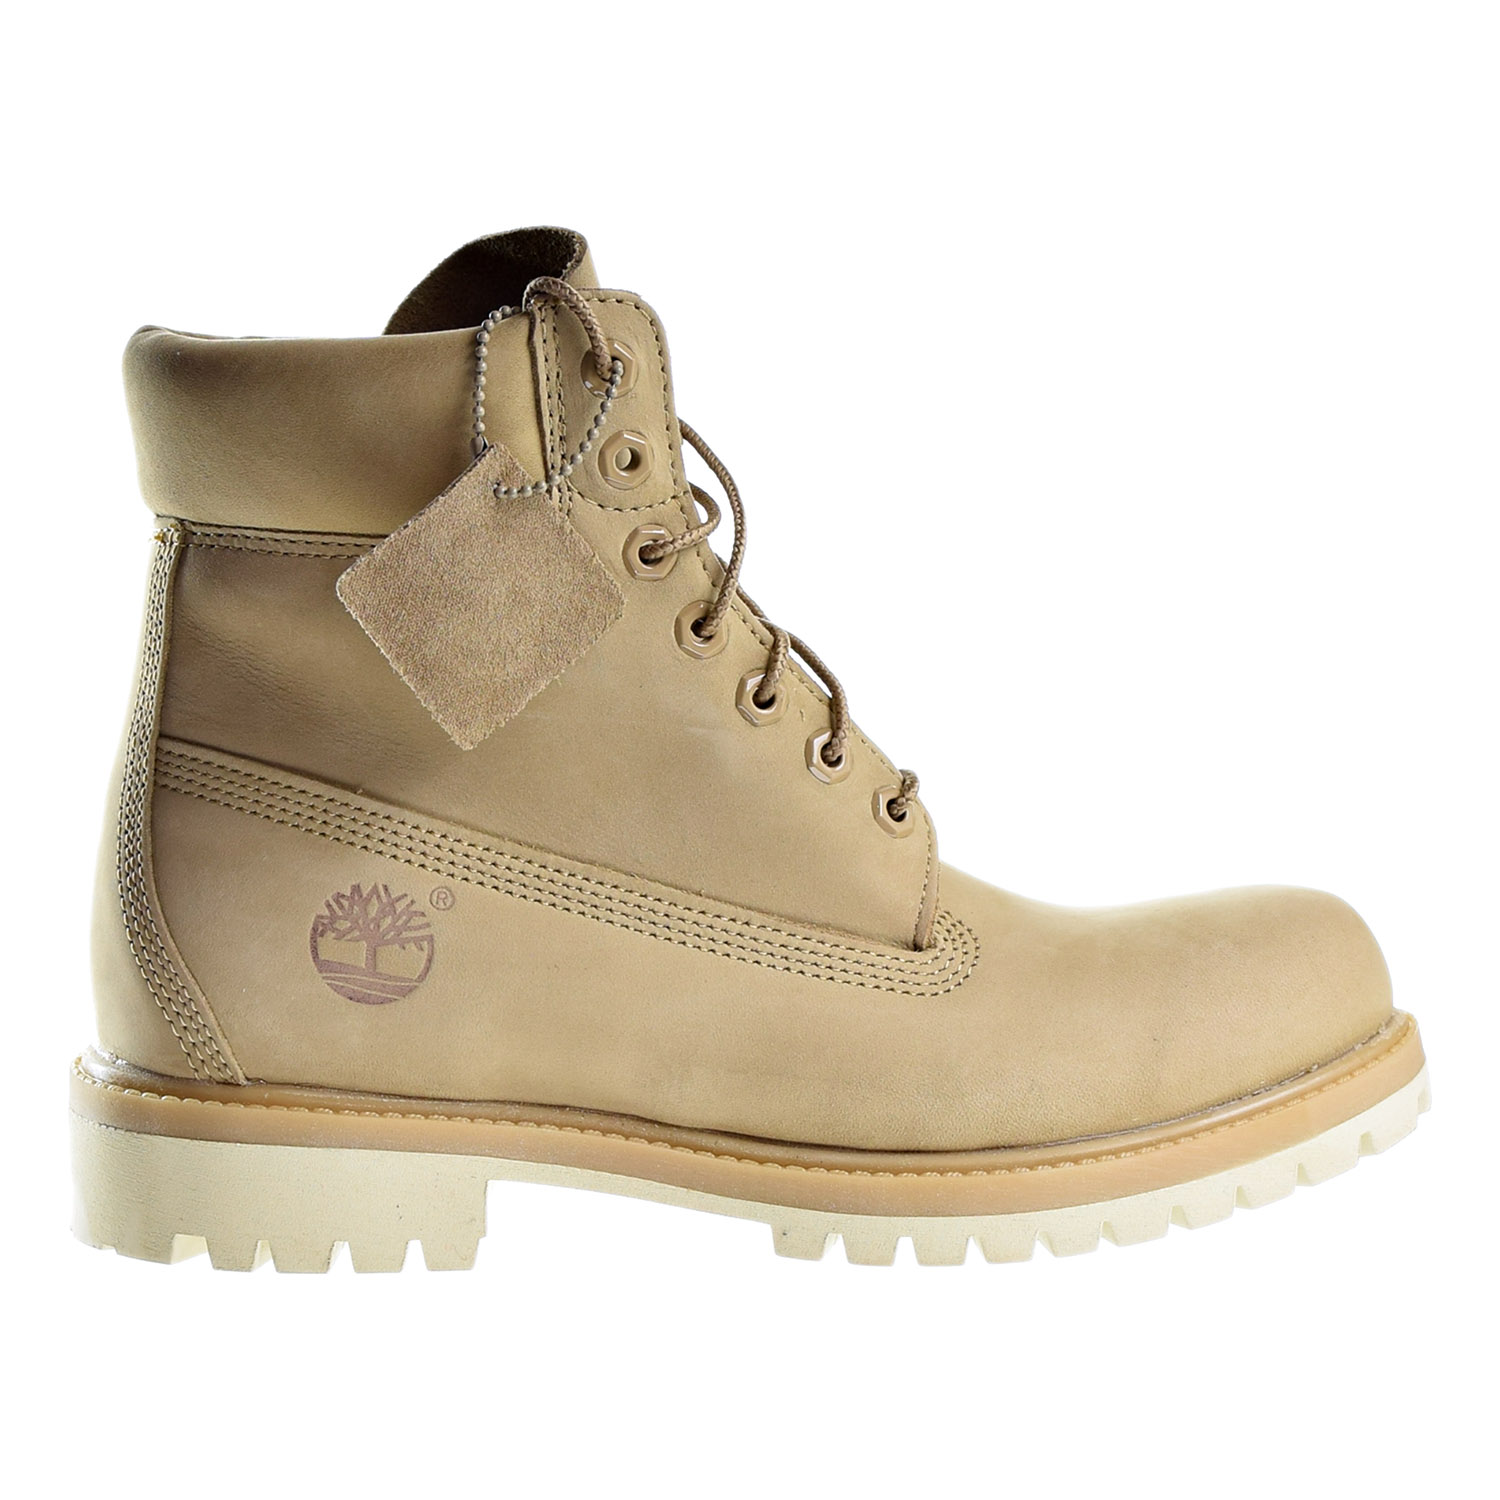 Timberland 6 Inch Premium Waterproof Boot Men's Brown tb0a1bbl by Timberland